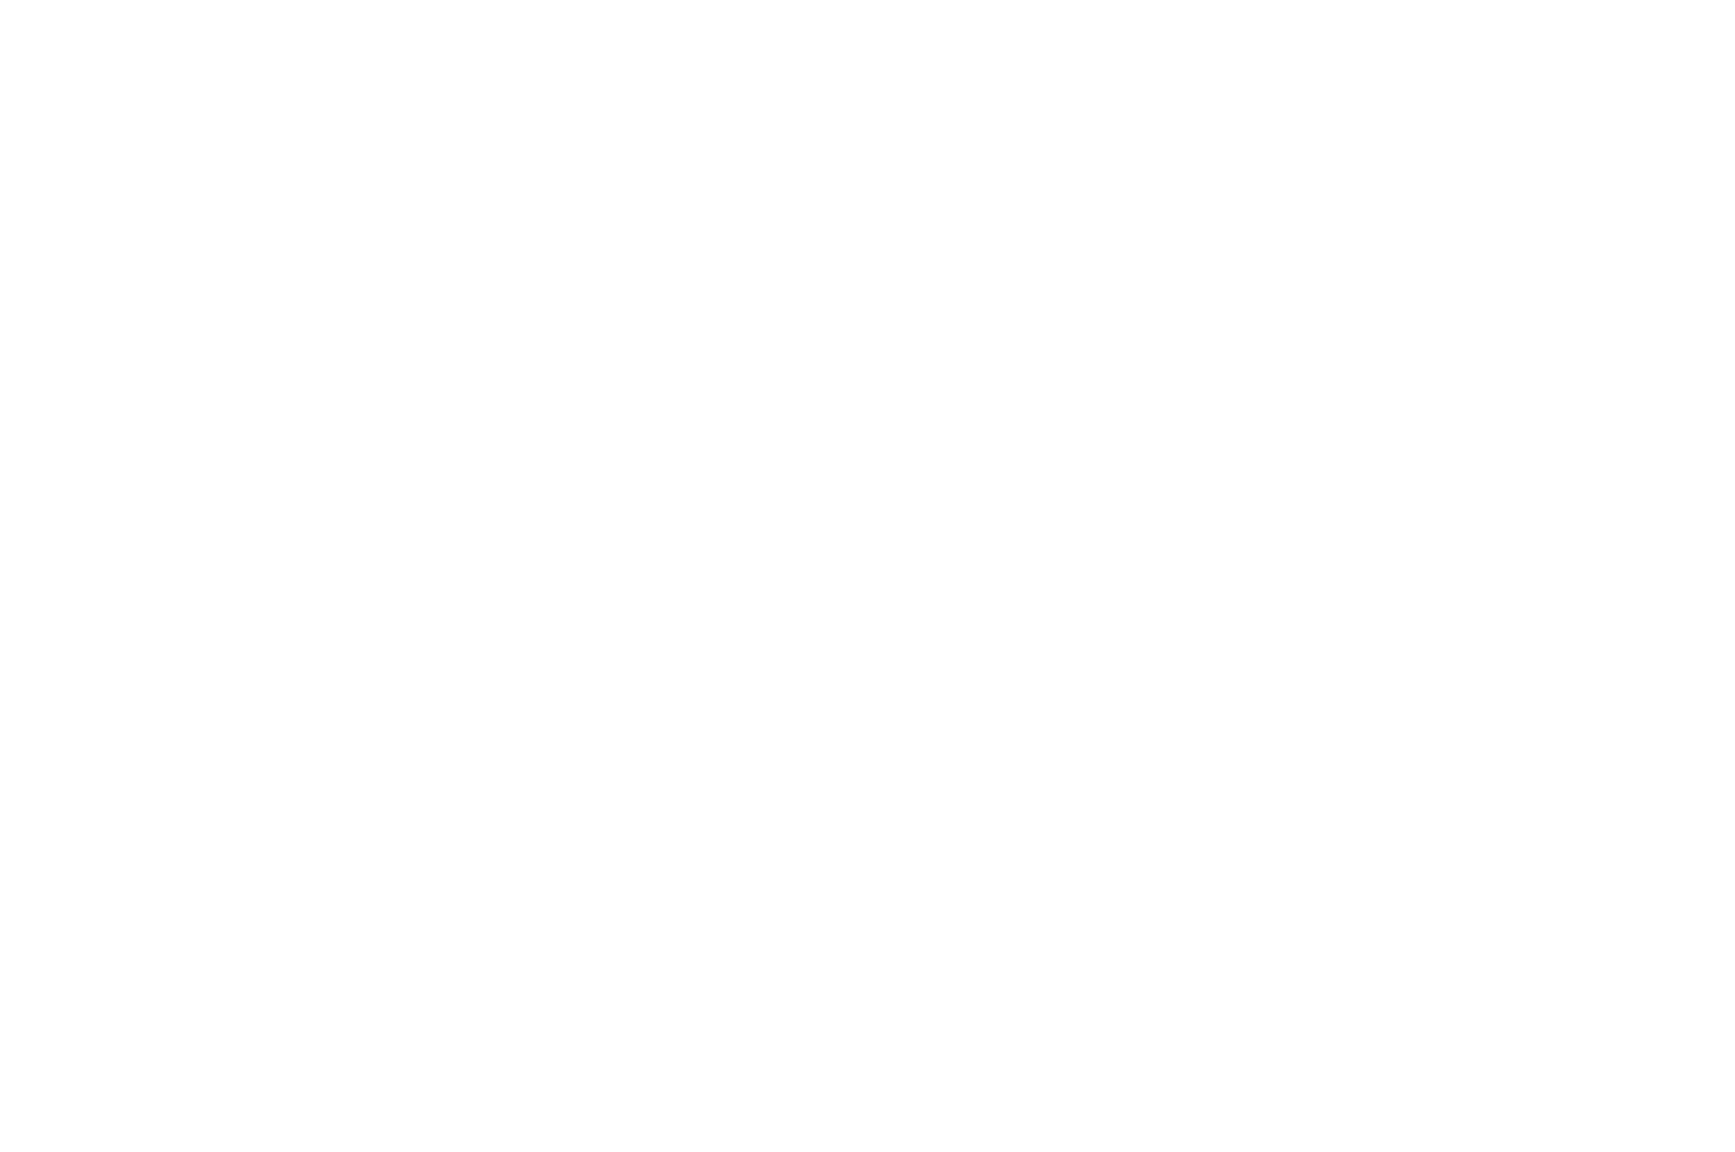 OFFICIAL SELECTION - Action on Film MegaFest 16th Annual Film Festival and Writers Competition - 2020